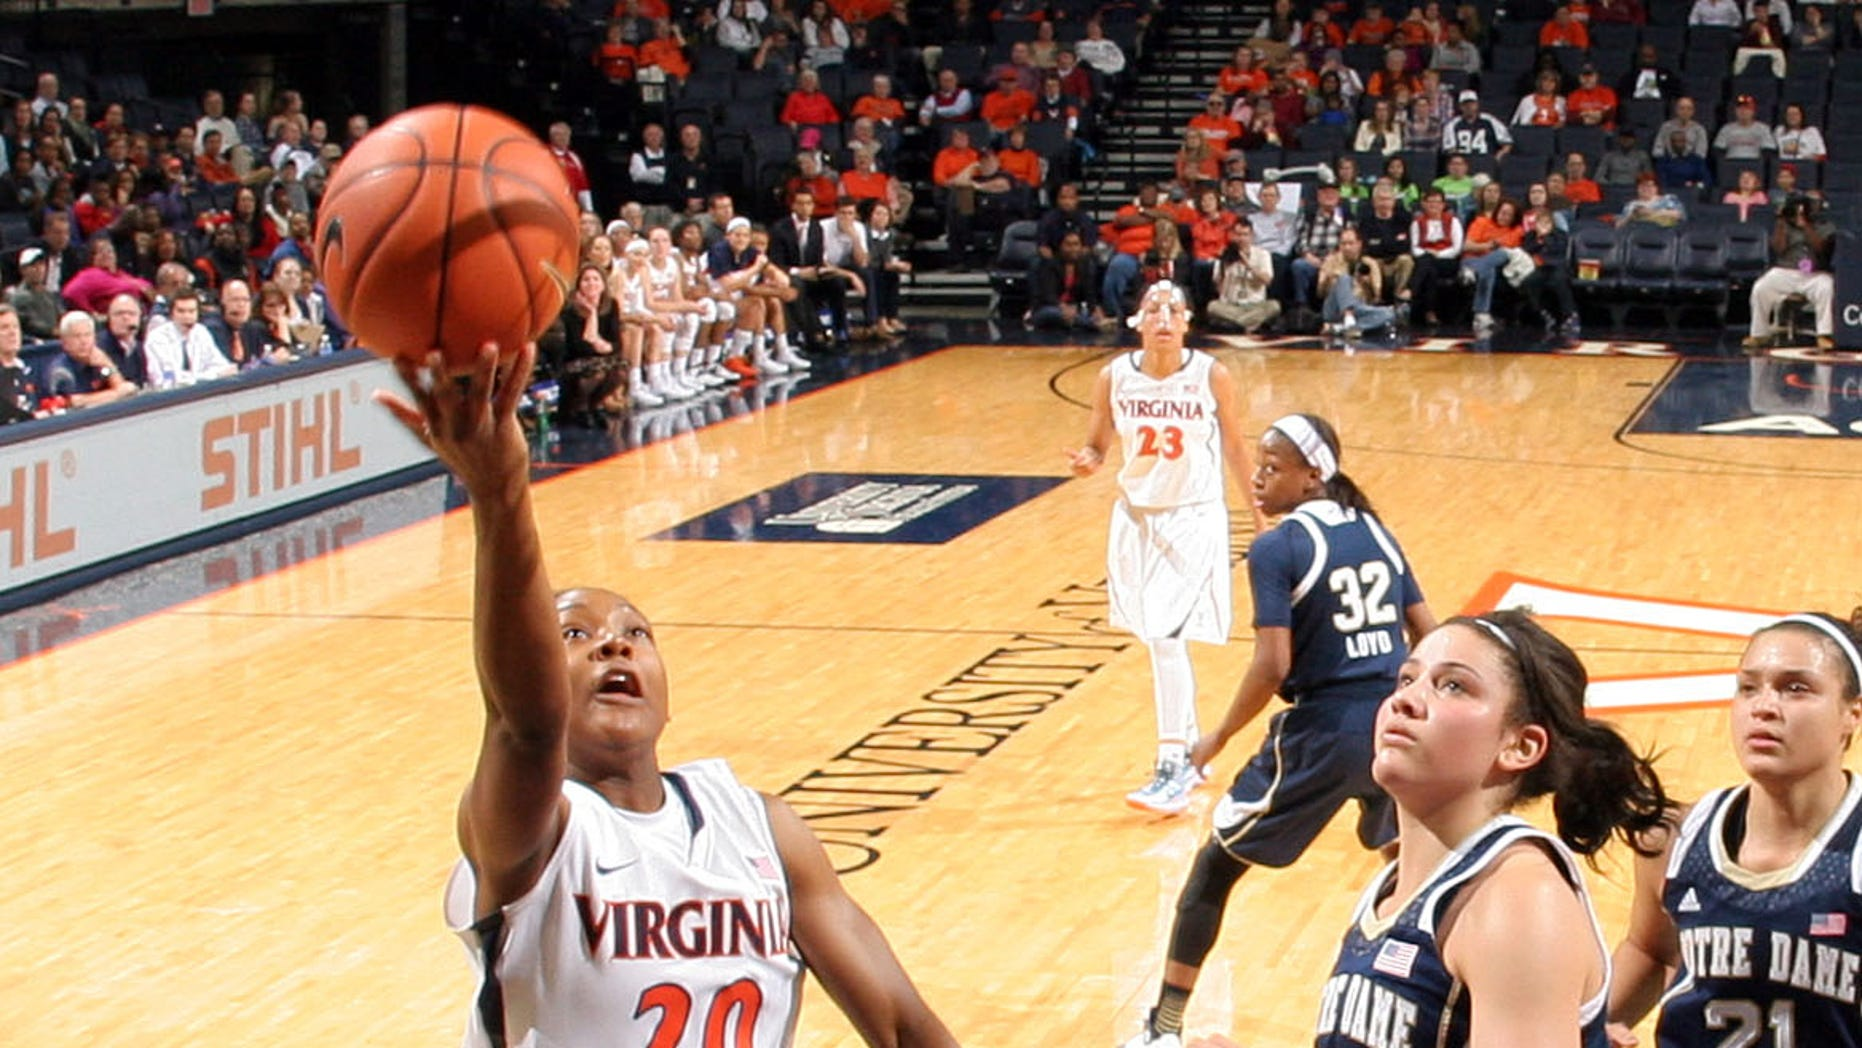 Virginia guard Faith Randolph (20) shoots next to Notre Dame forward Natalie Achonwa during the first half of an NCAA college basketball game on Sunday, Jan. 12, 2014, in Charlottesville, Va. Notre Dame defeated Virginia  79-72. (AP Photo/Andrew Shurtleff)